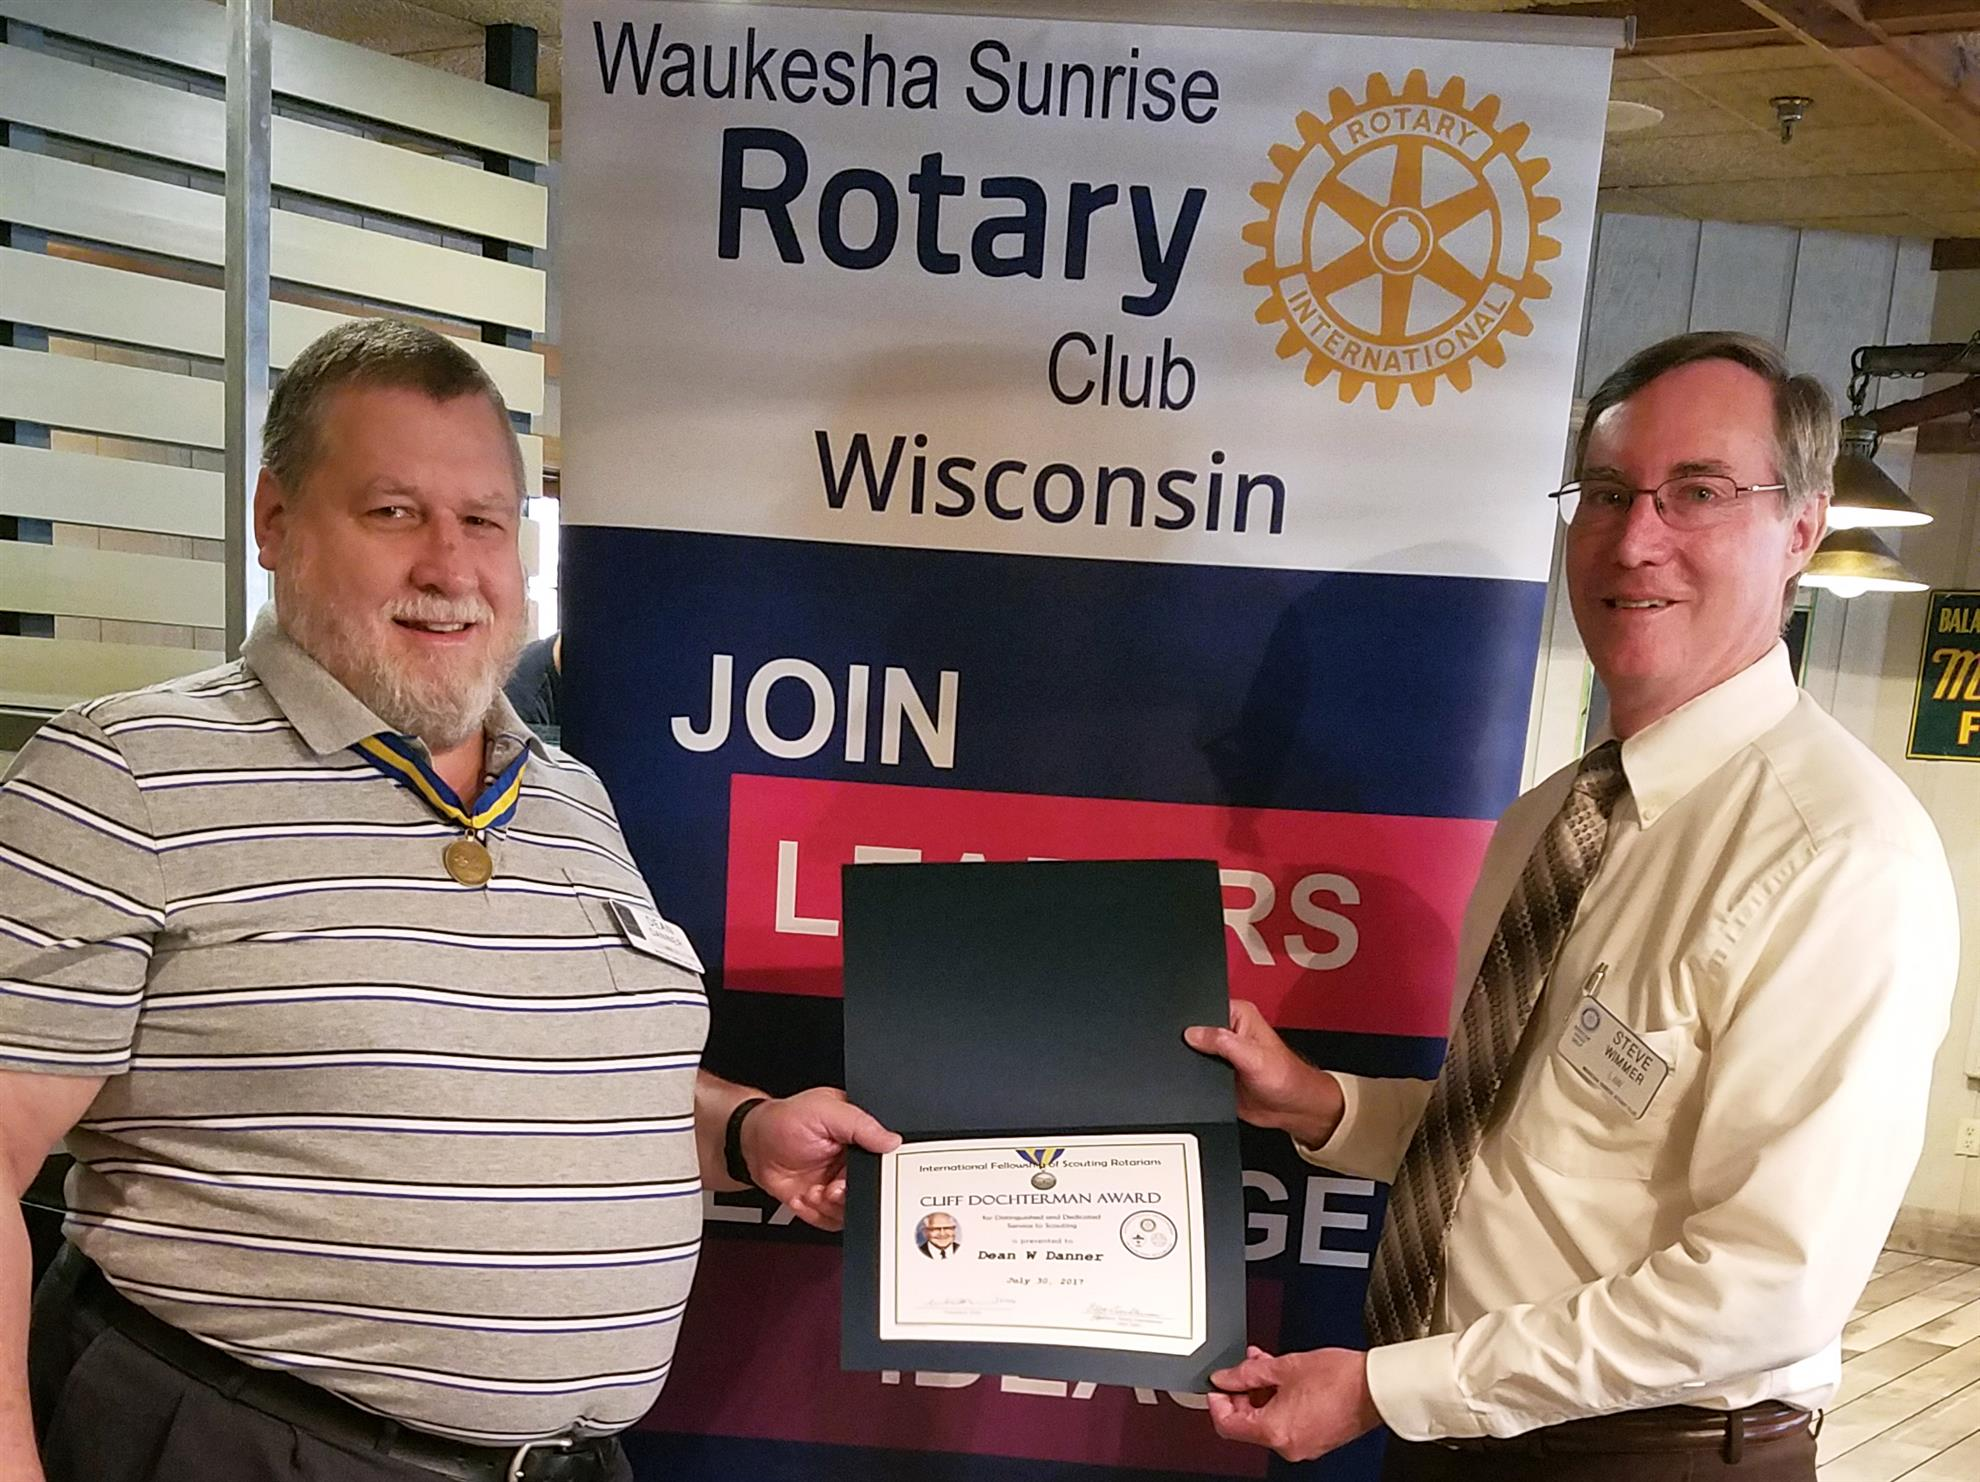 Home Page Rotary Club Of Waukesha Sunrise